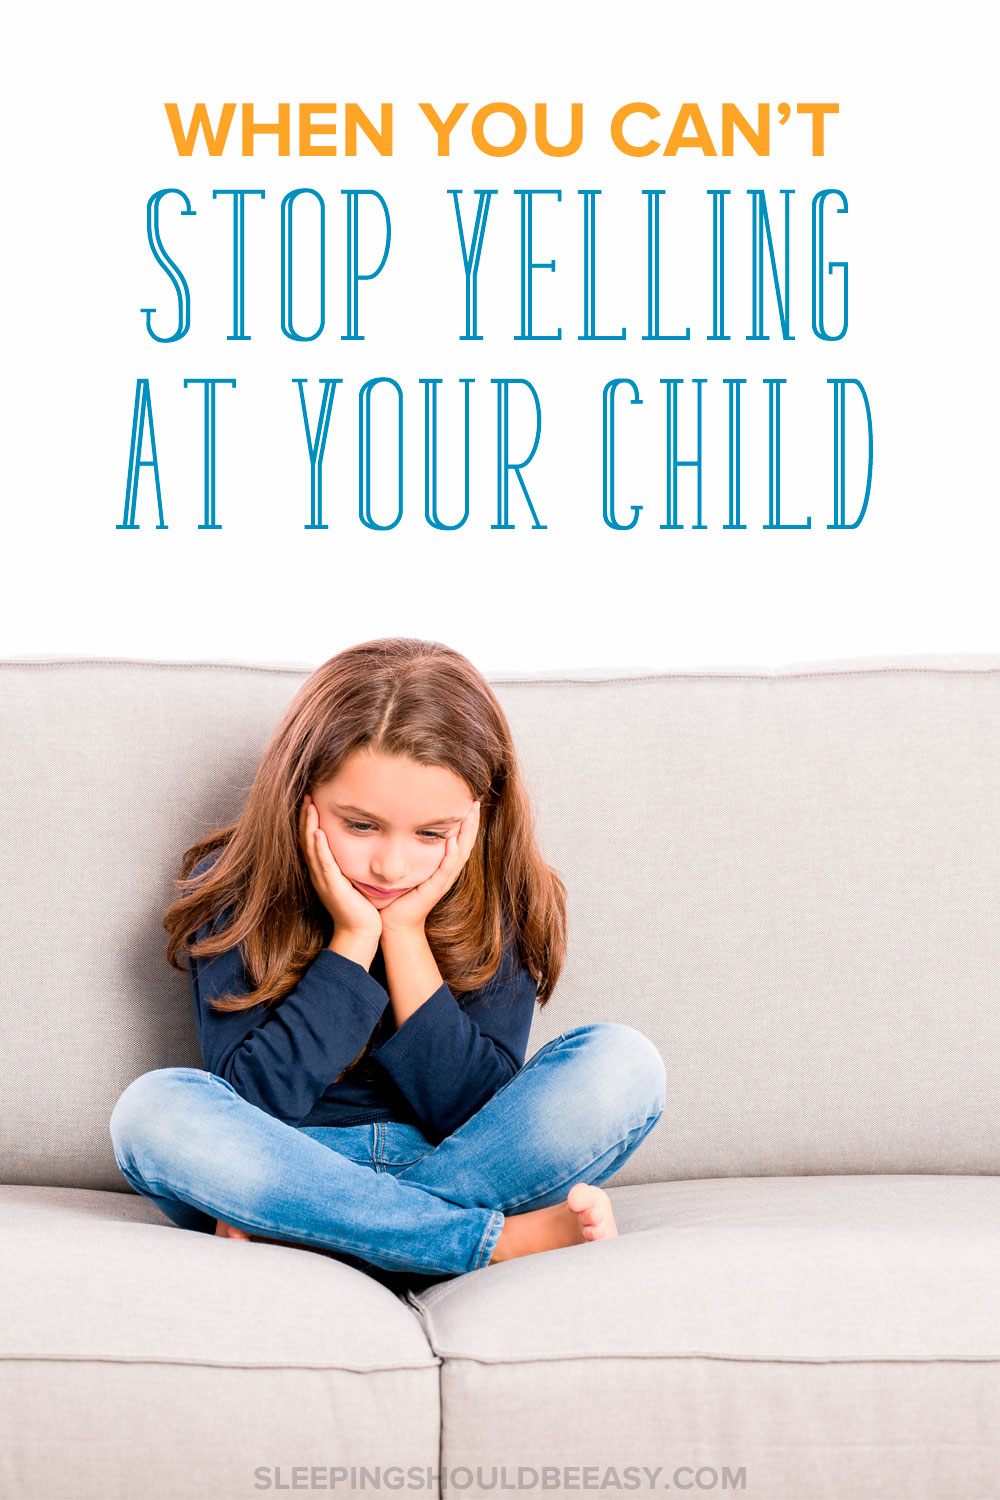 """""""I can't stop yelling at my child!"""" Perhaps you can relate. Here are tips on how to better control your anger when you find yourself yelling at your child."""